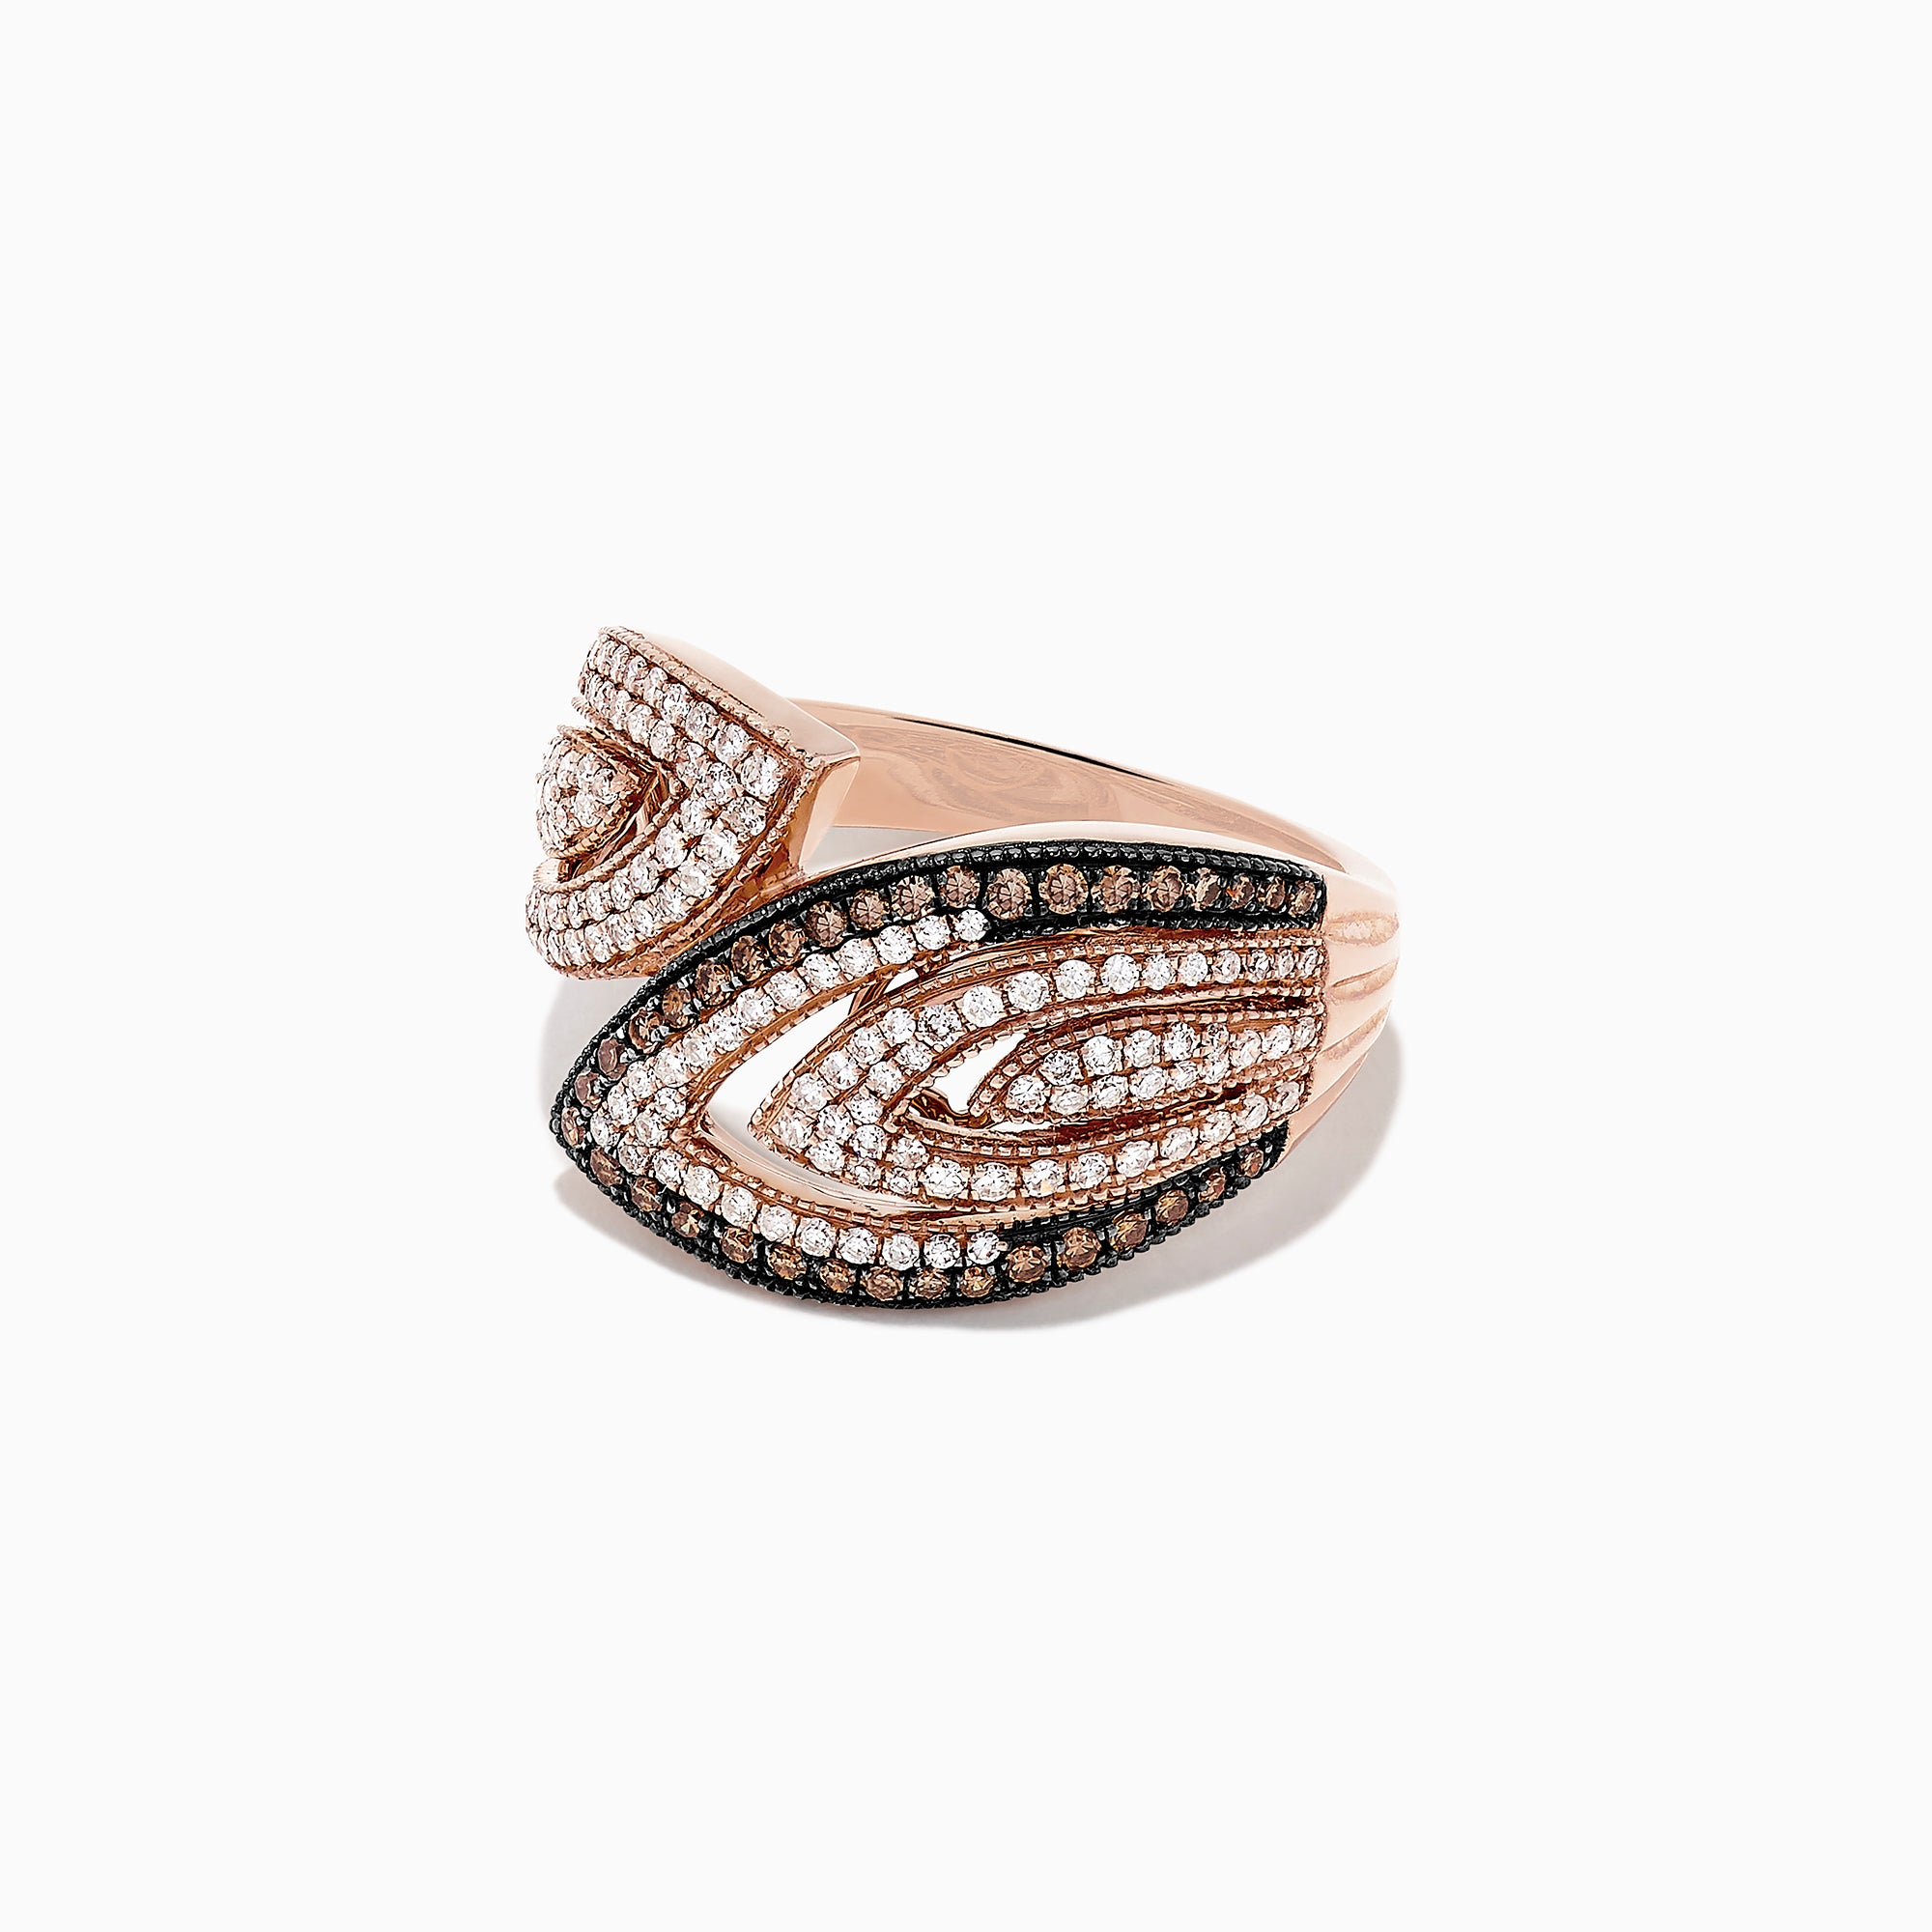 Effy 14K Rose Gold Espresso and White Diamond Ring, 0.73 TCW